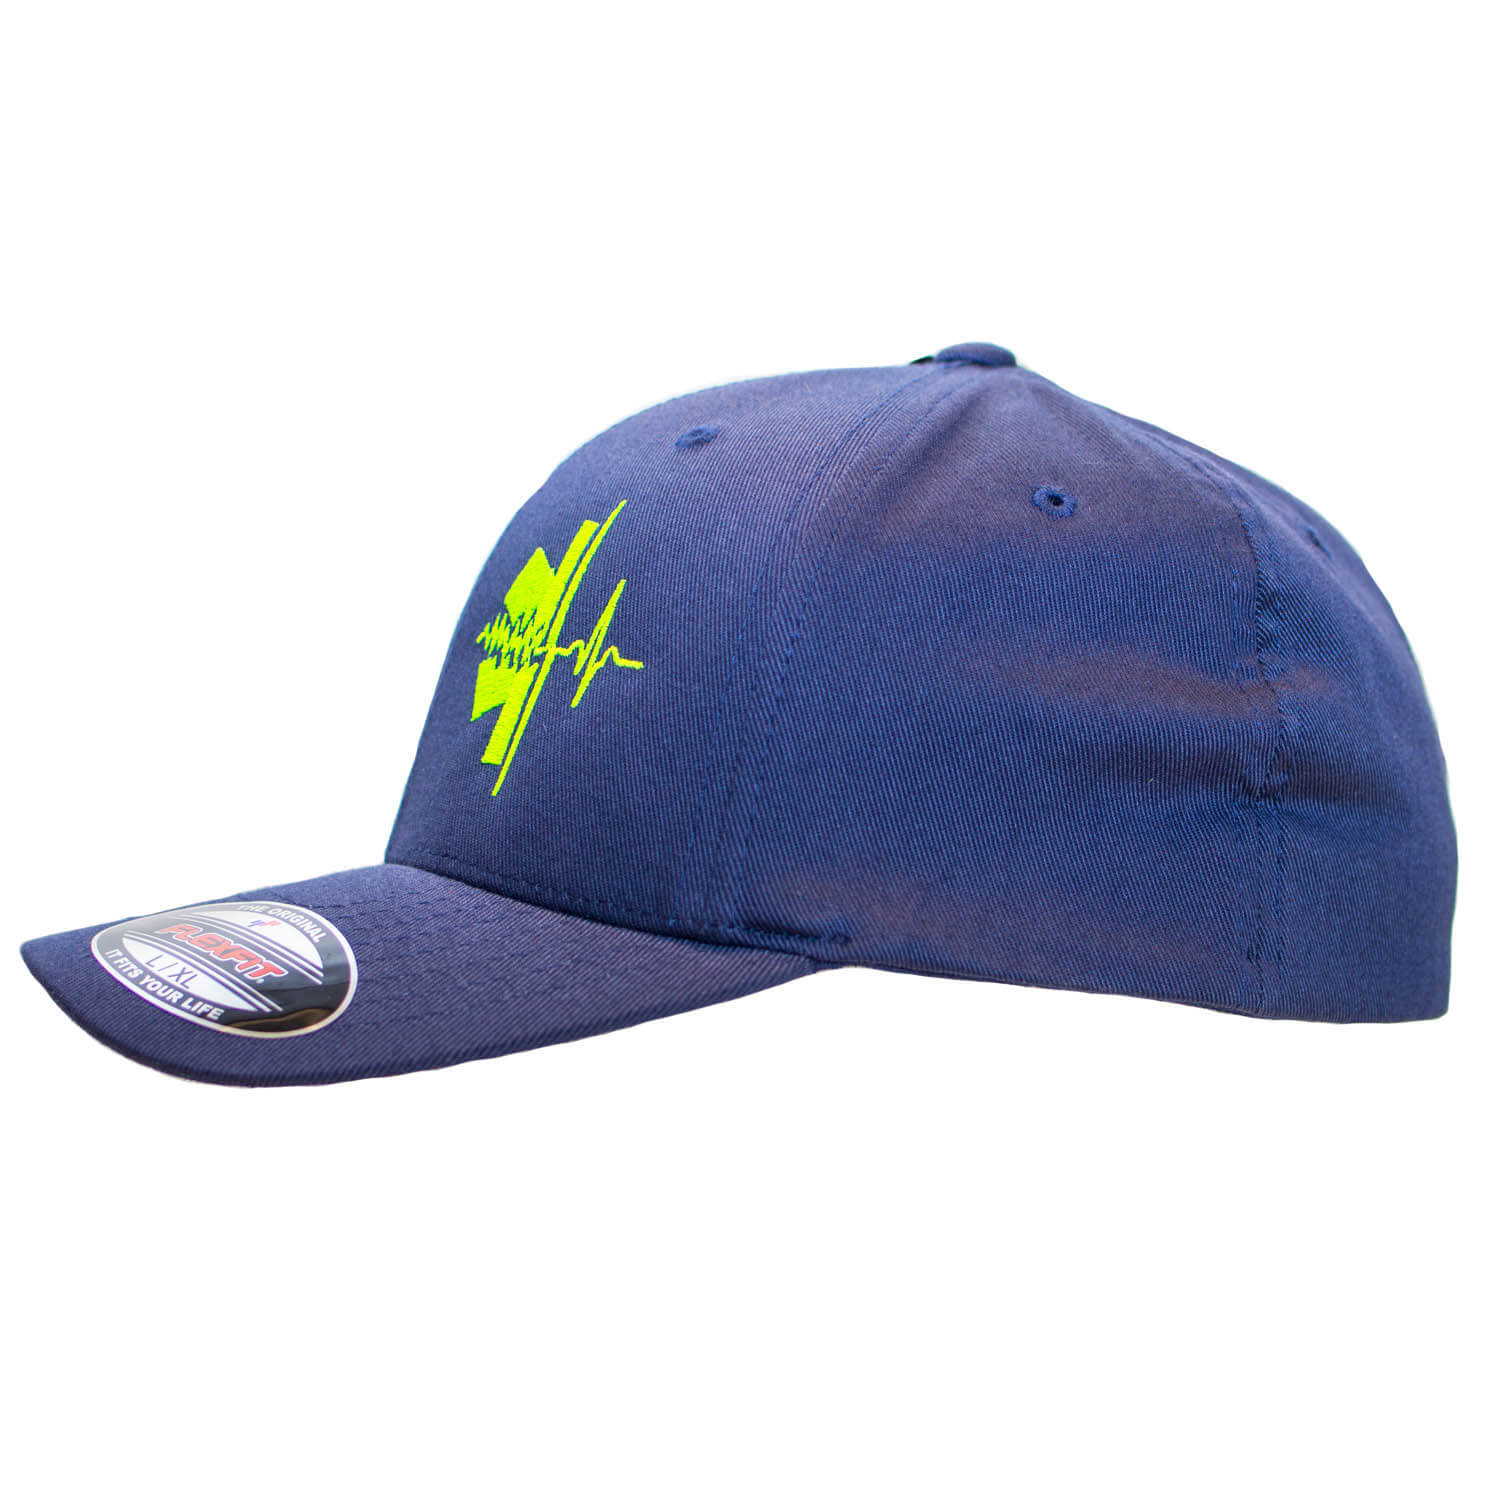 RESCUE Star of Life Basecap Navy - Neon Line